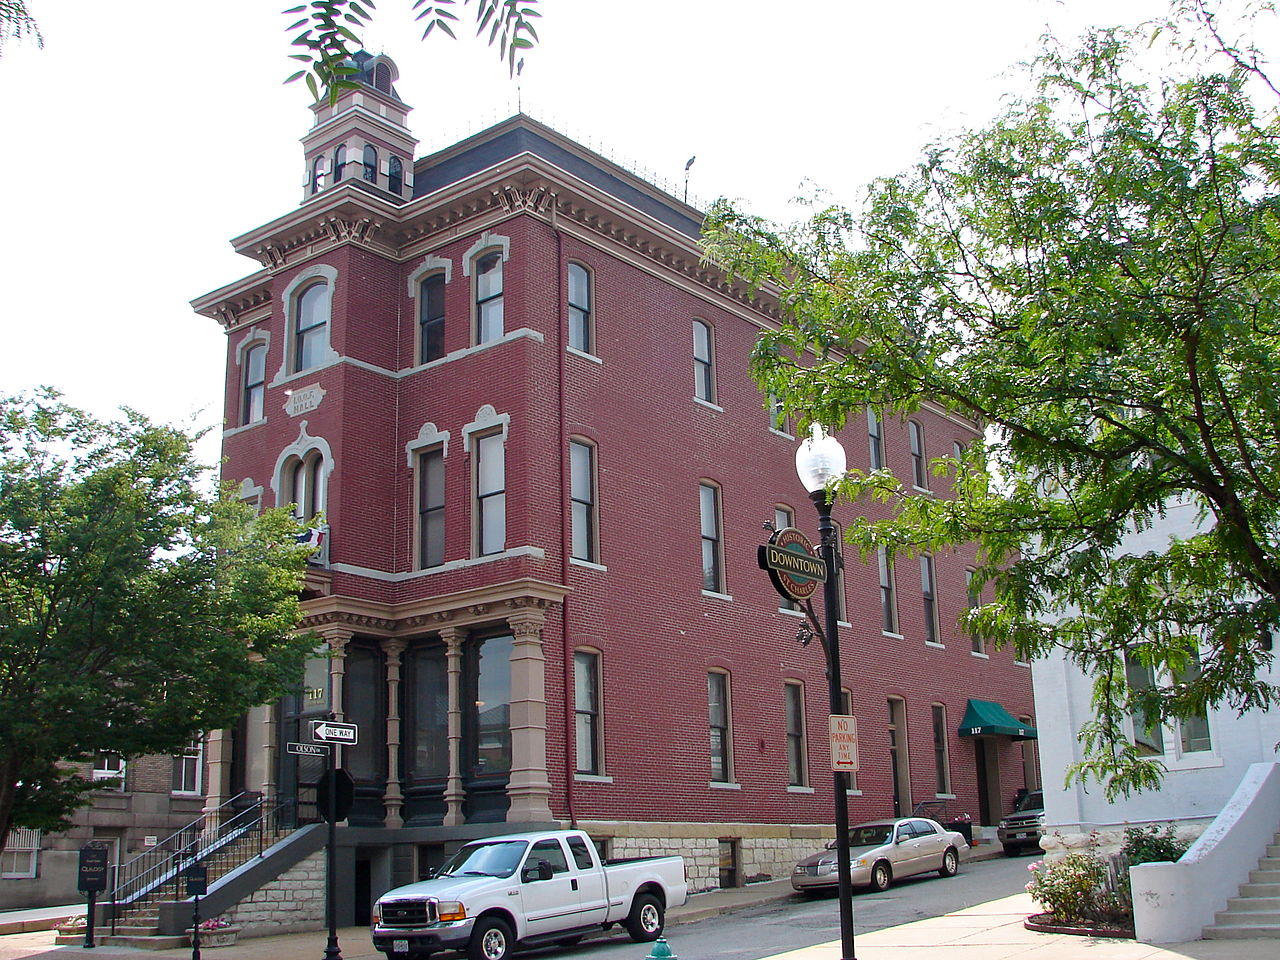 The St. Charles Odd Fellows Hall was built in 1878 and is one of the city's most recognizable buildings.